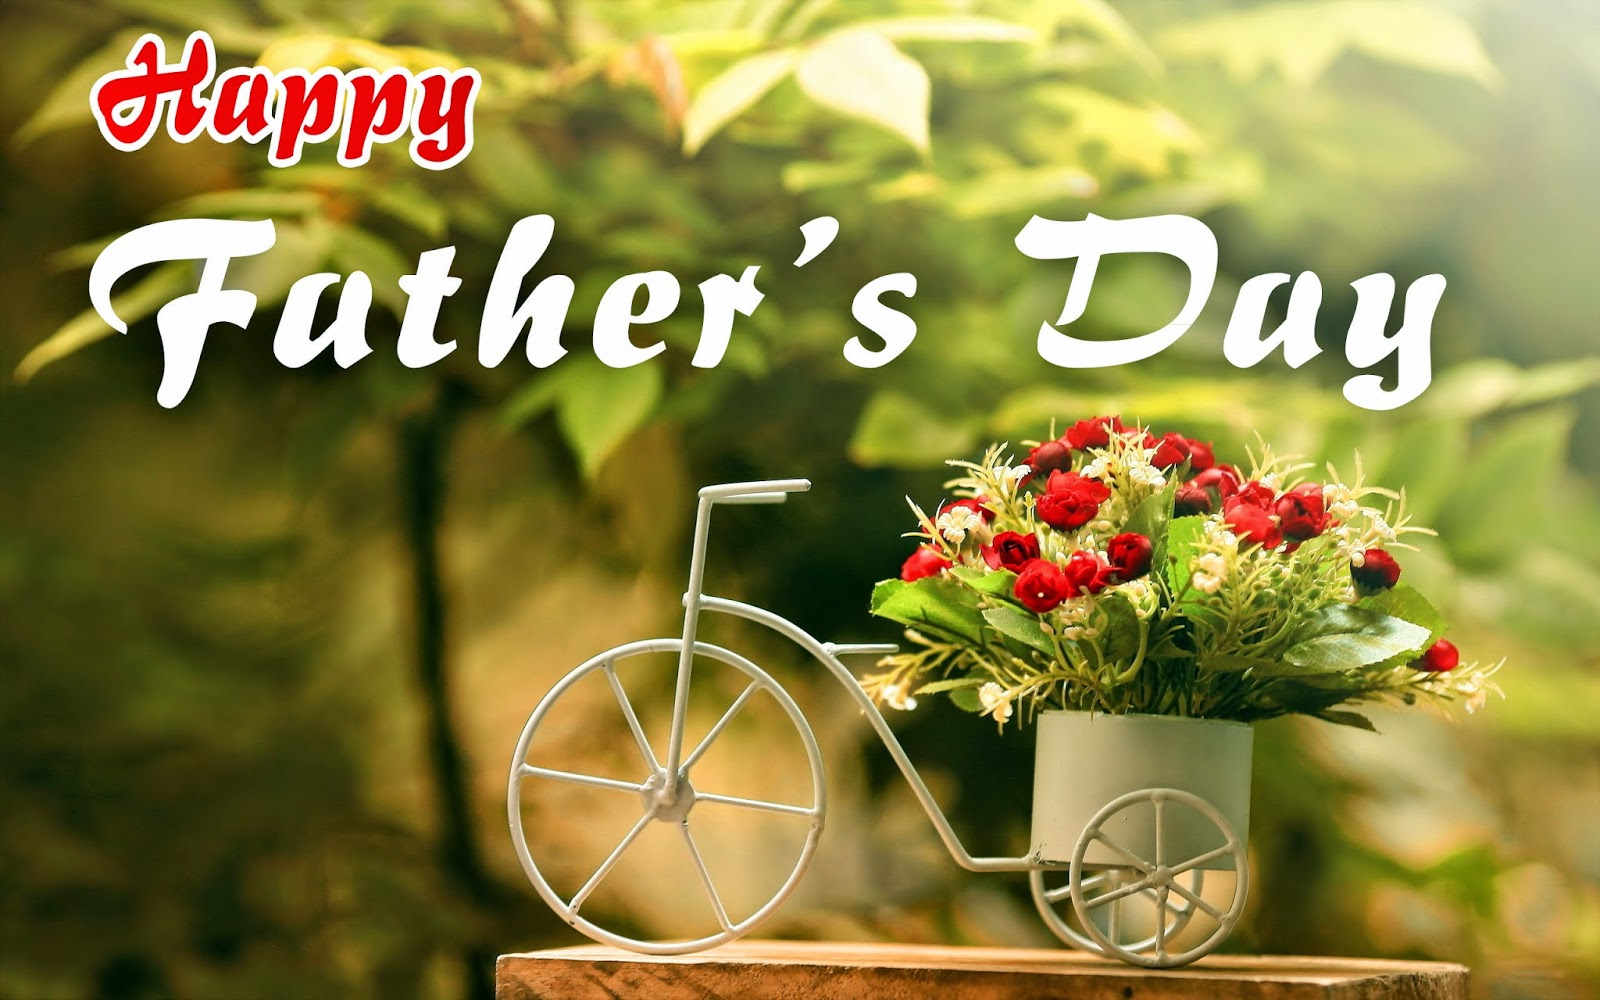 Best Fathers Day Wallpapers 9to5animationscom   HD Wallpapers 1600x1000